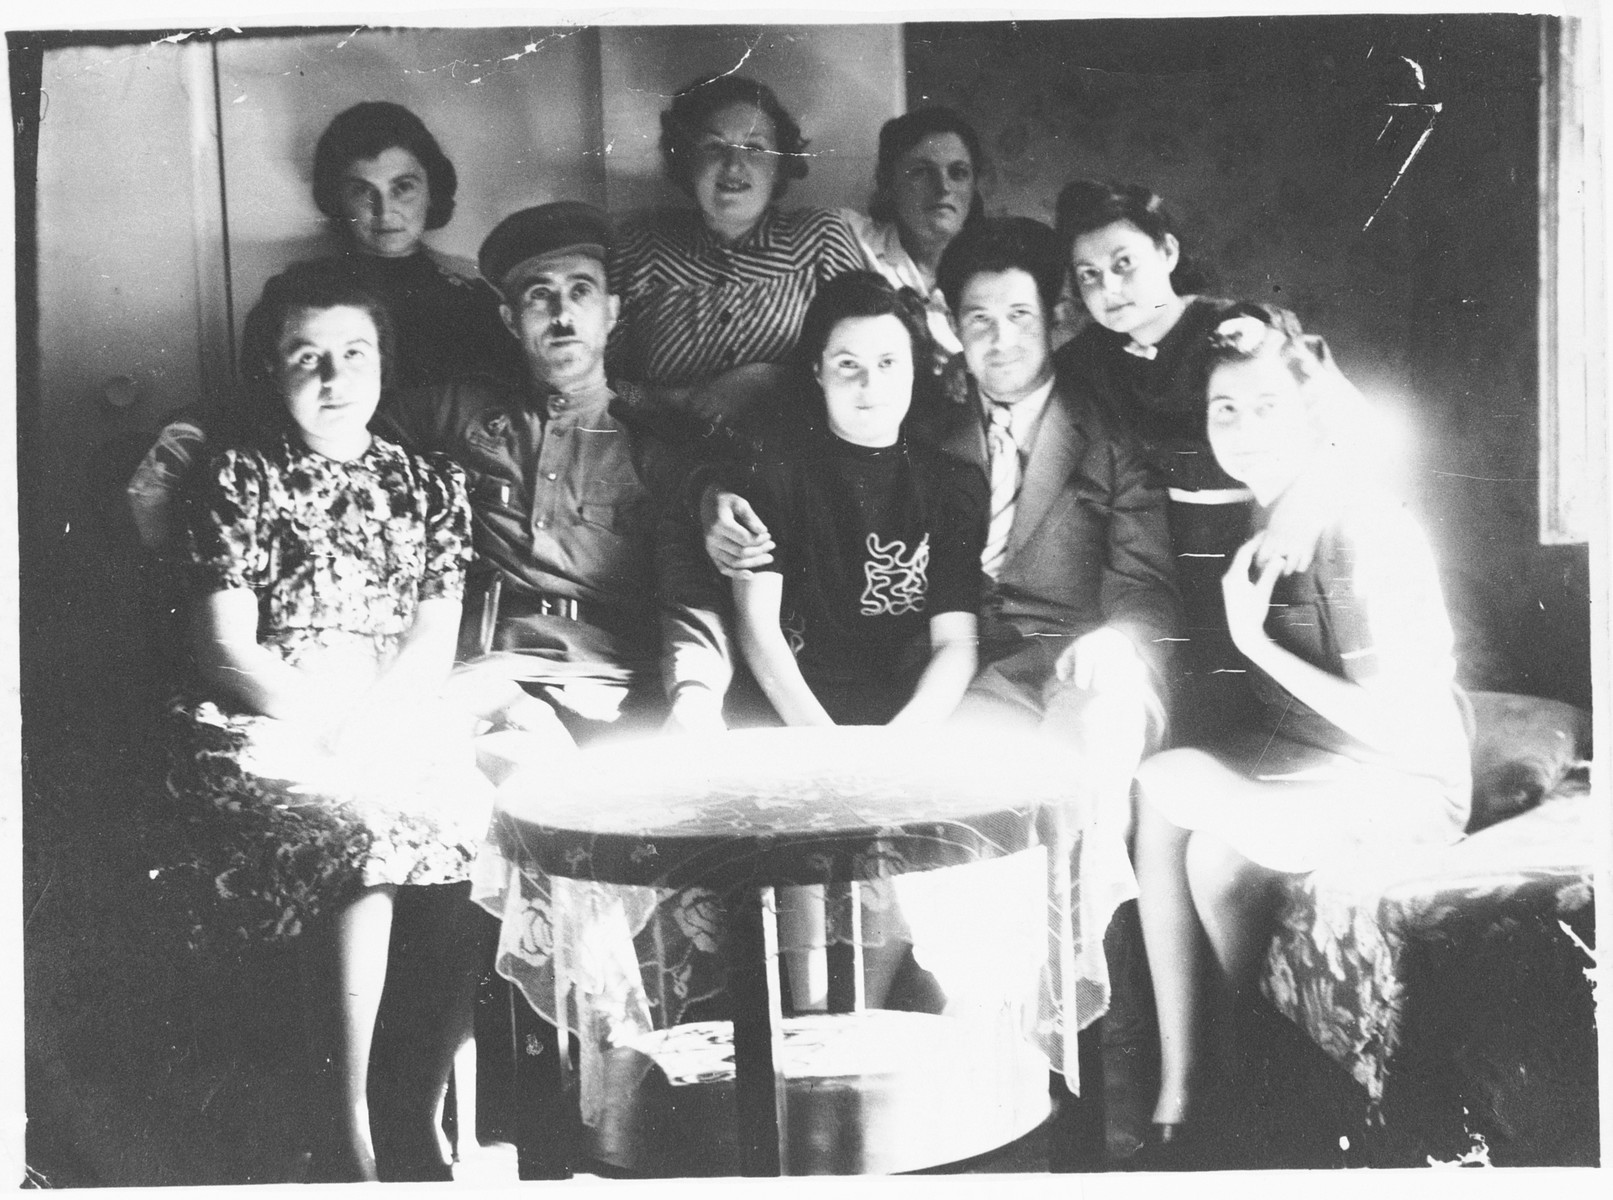 A group of Jewish DPs gather around a table in Koeslin, Poland.  Pictured seated in the front row, from left to right, are:  Esther Poupko, unknown, Susanne Strauss, her fiance Herman Taube, Gerda Lehman and Vera Sklan.  Standing behind in the center is Hannelore Marx.